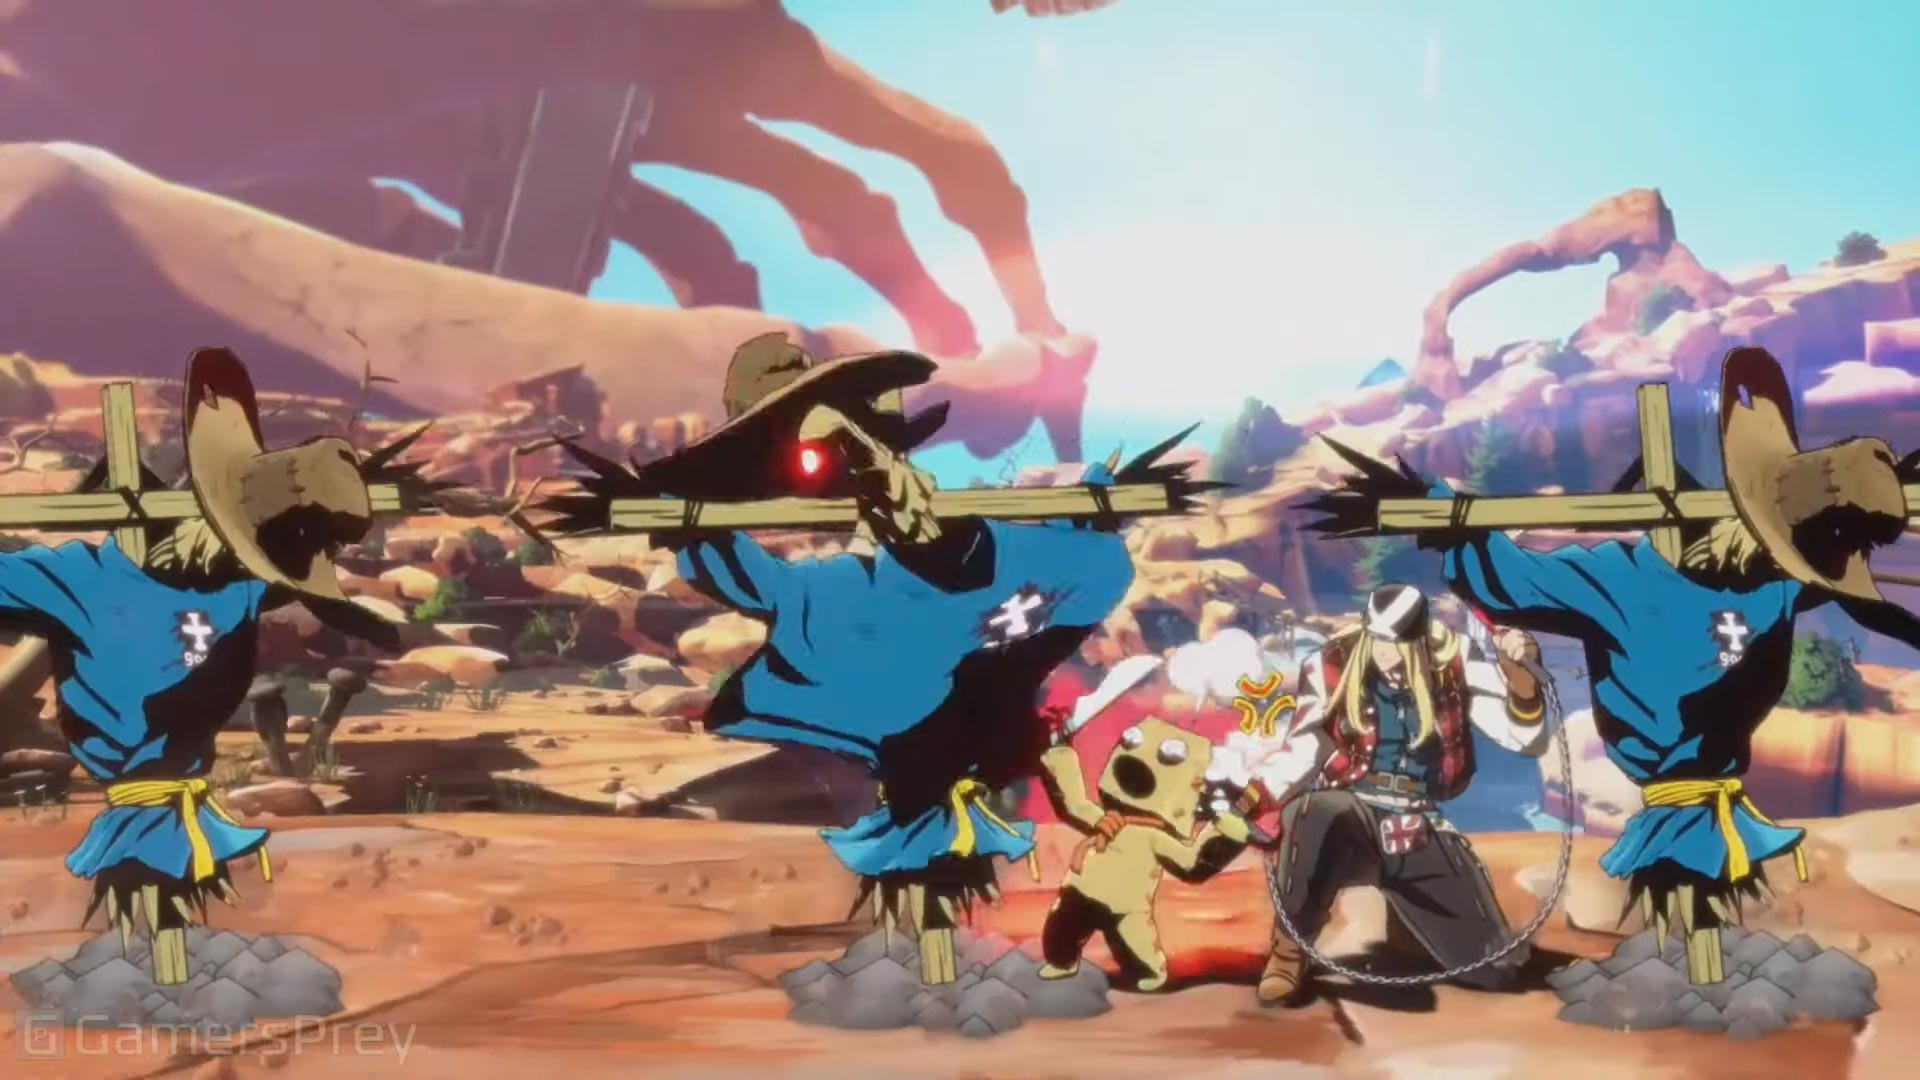 Guilty Gear Strive Faust Reveal Trailer Images 5 out of 6 image gallery